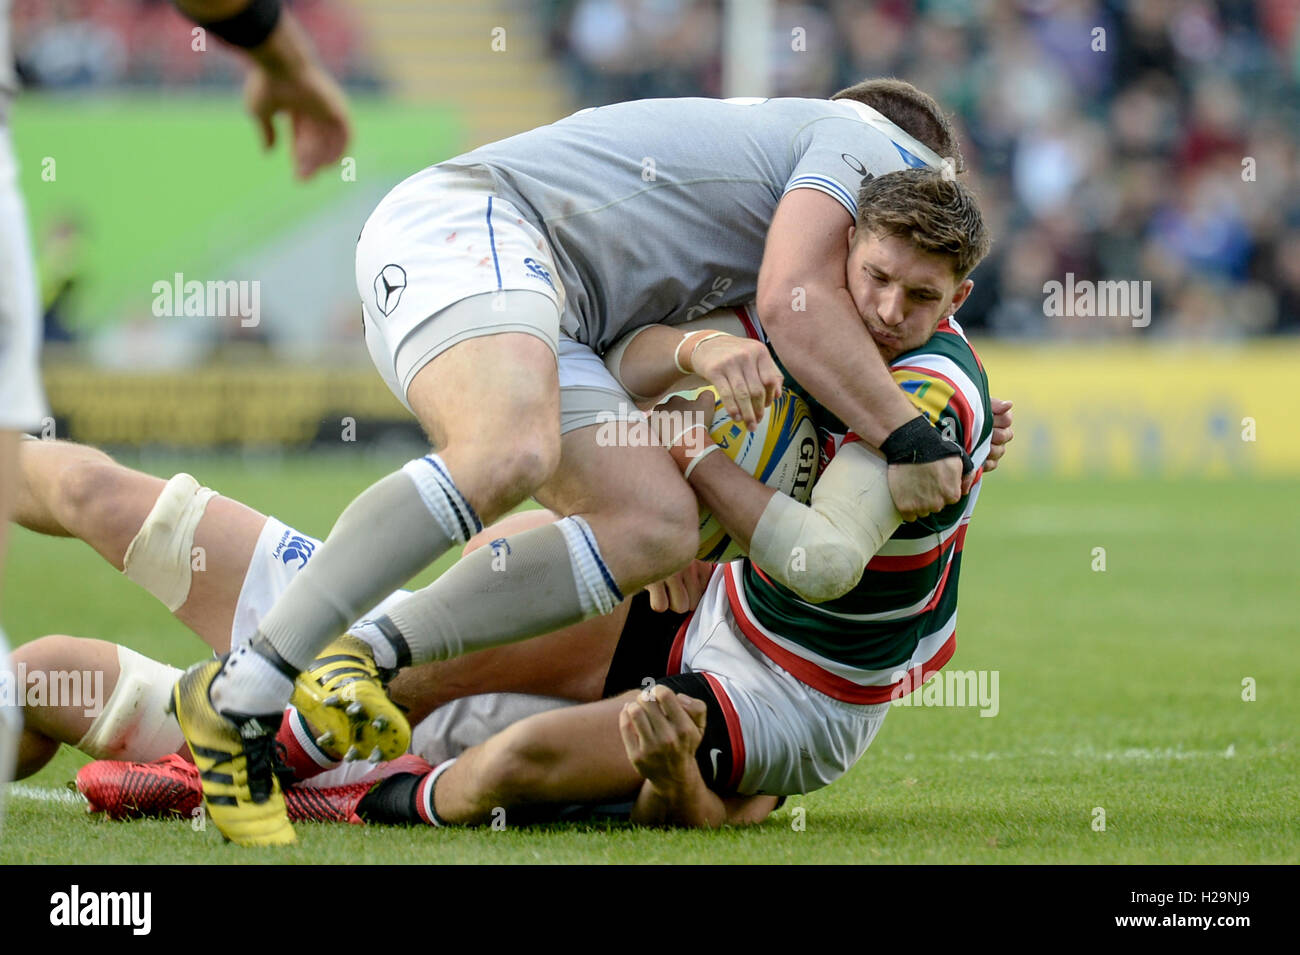 Leicester Tigers vs Bath Rugby at Welford Road, 25/09/16. - Stock Image